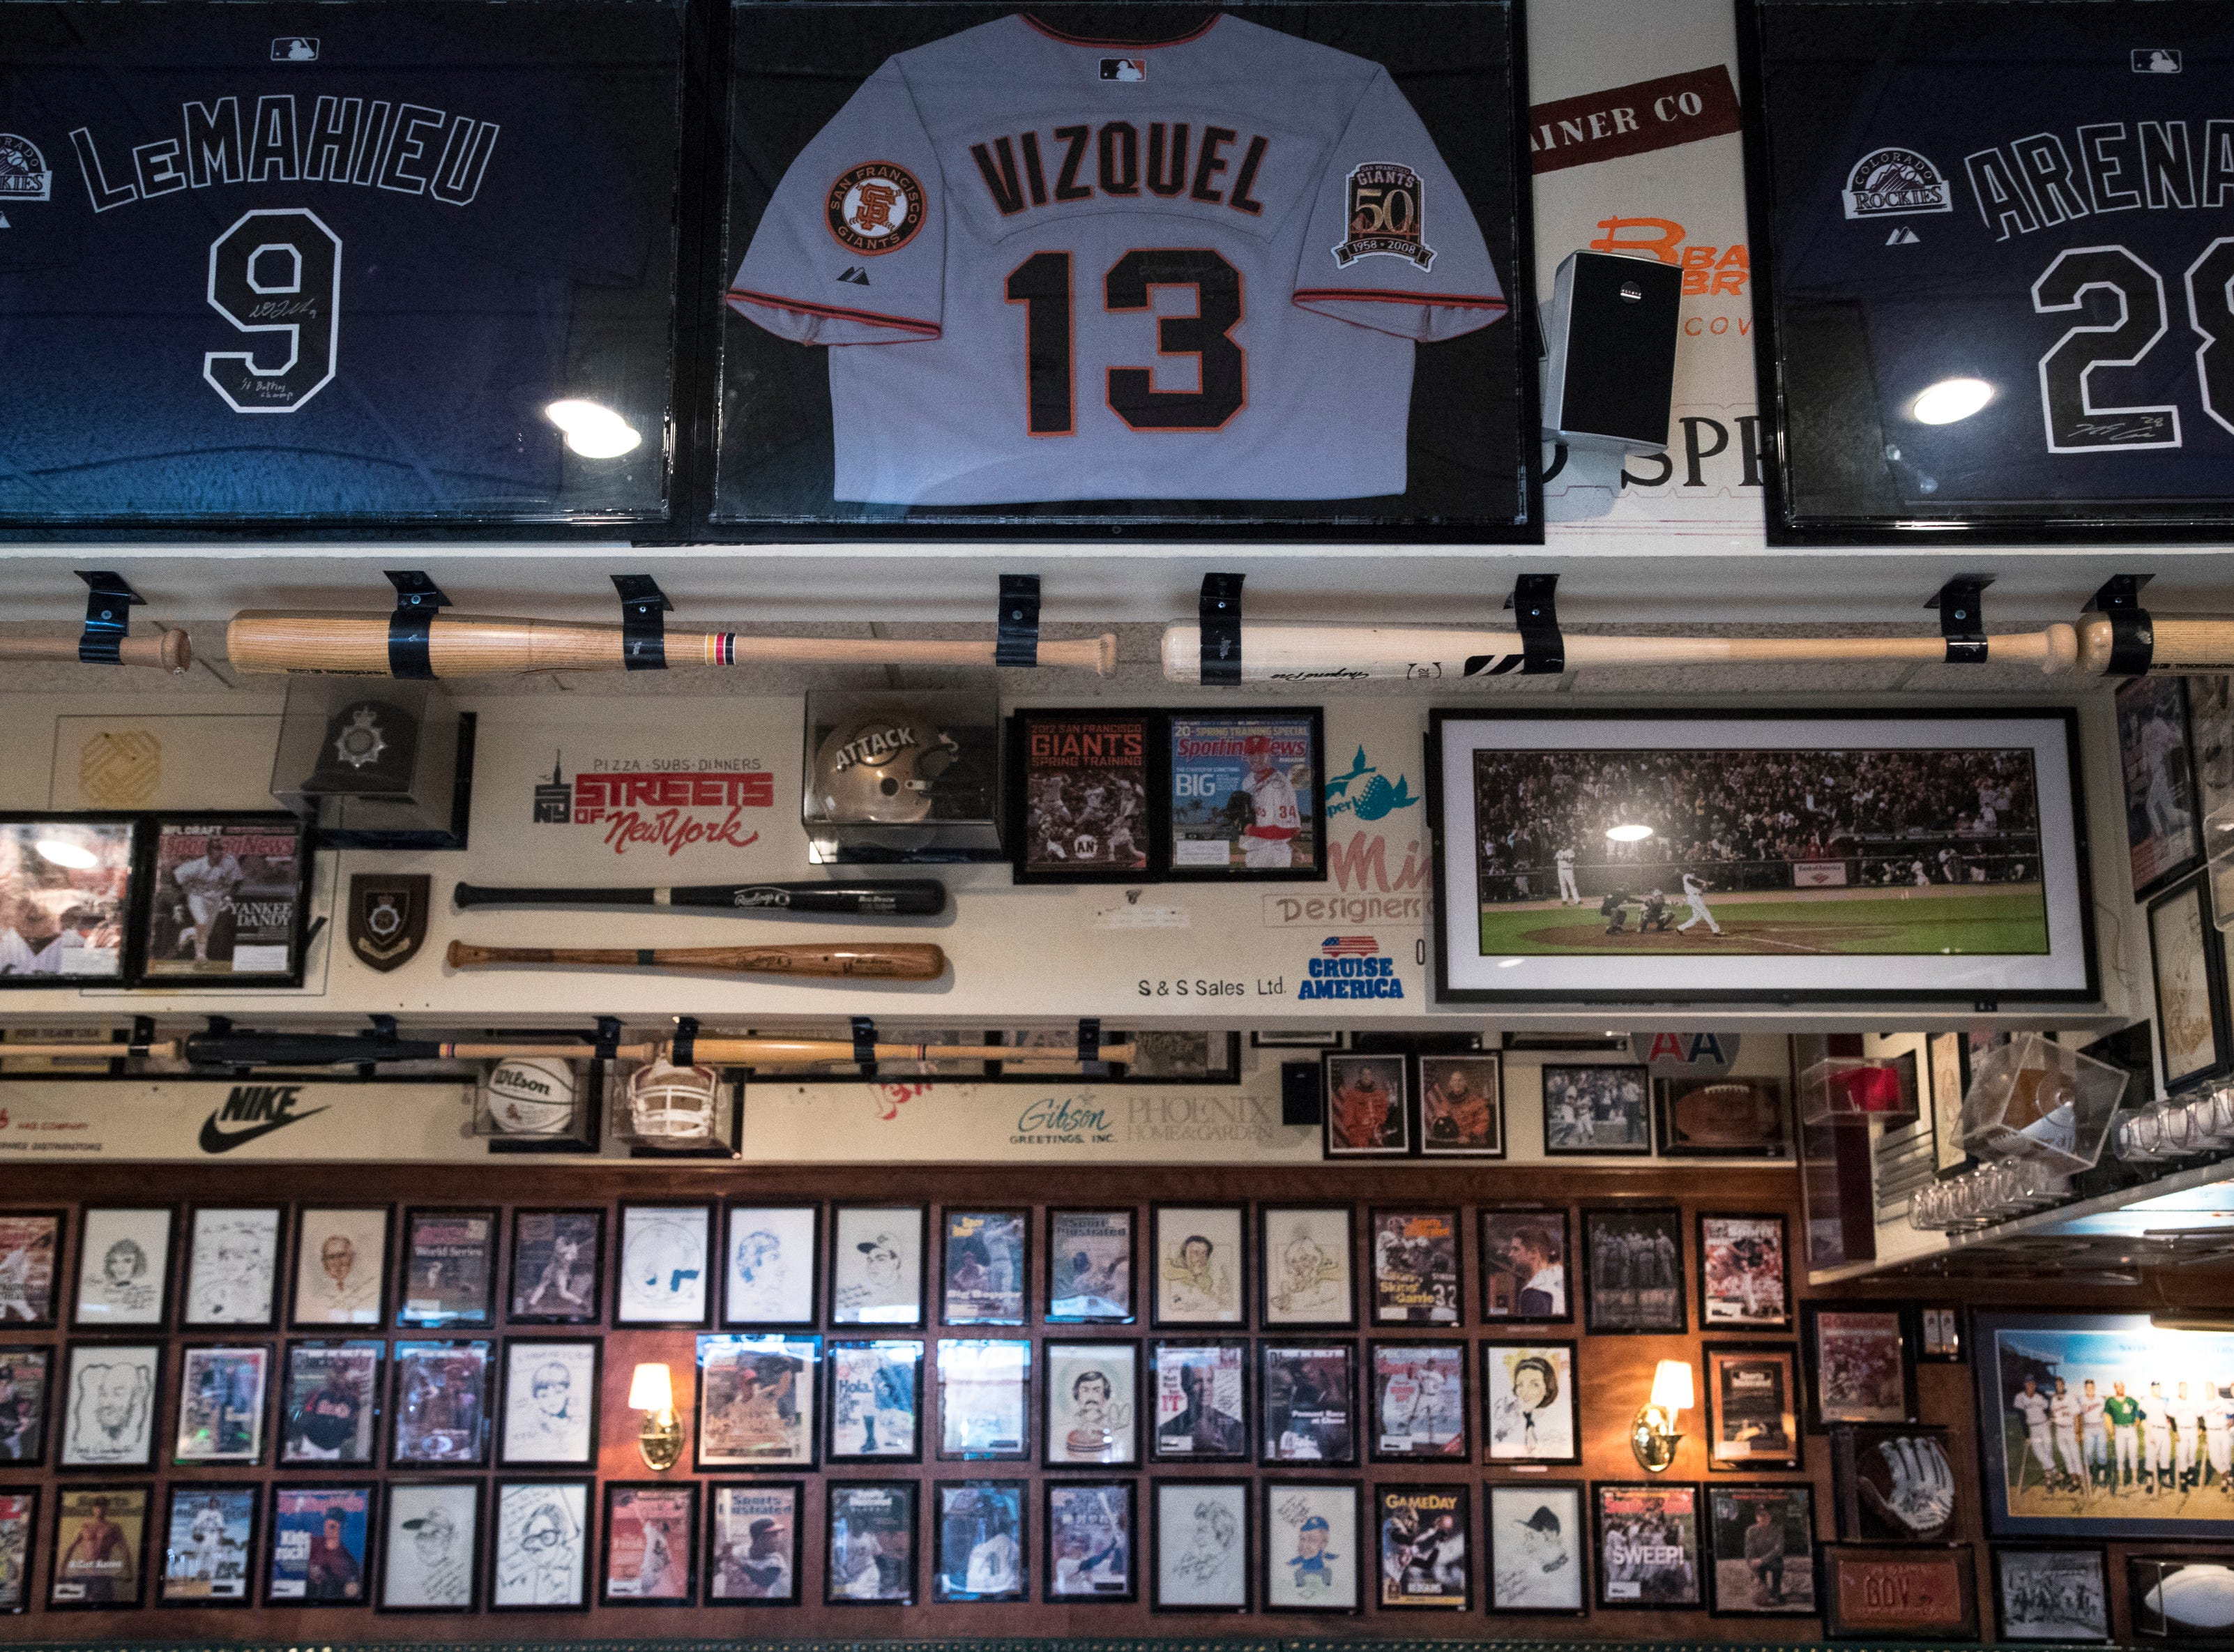 Memorabilia hangs on the walls Feb. 27, 2019, at Don & Charlie's, 7501 E. Camelback Road, Scottsdale.